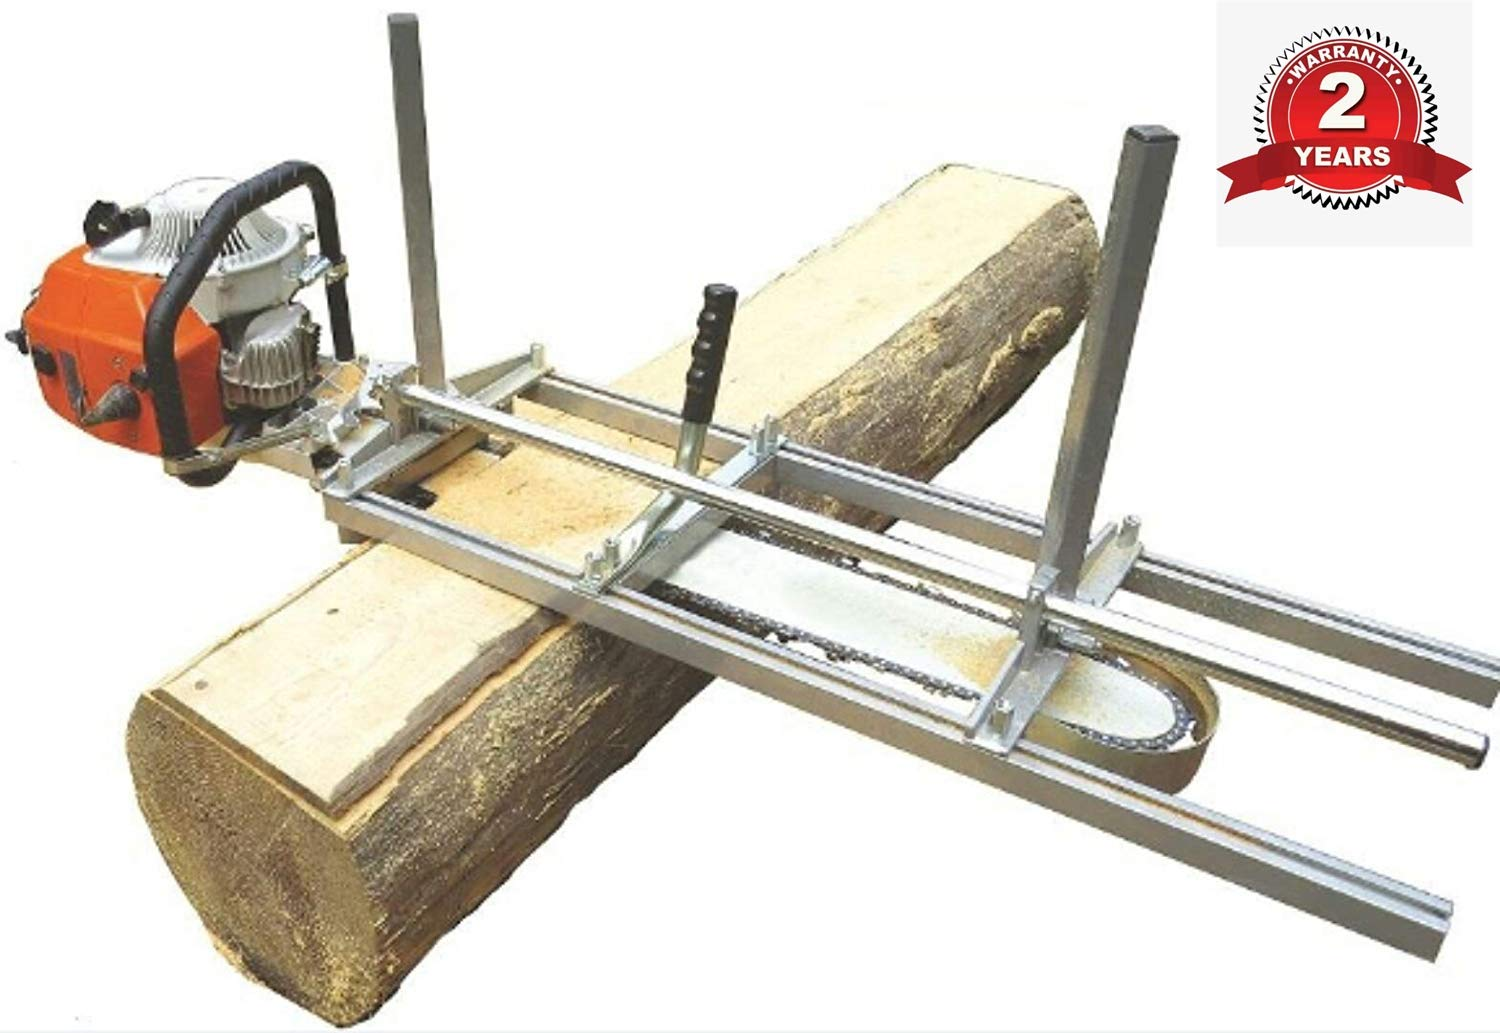 TTF Chainsaw Mill Attachment Chainsaw Milling Planking Milling Bar Planking Cutting Guide Bar Chainsaw Mill Guide Sawmill For Chainsaw Portable Chain Sawmill Attachment (14''-36'') by TTF